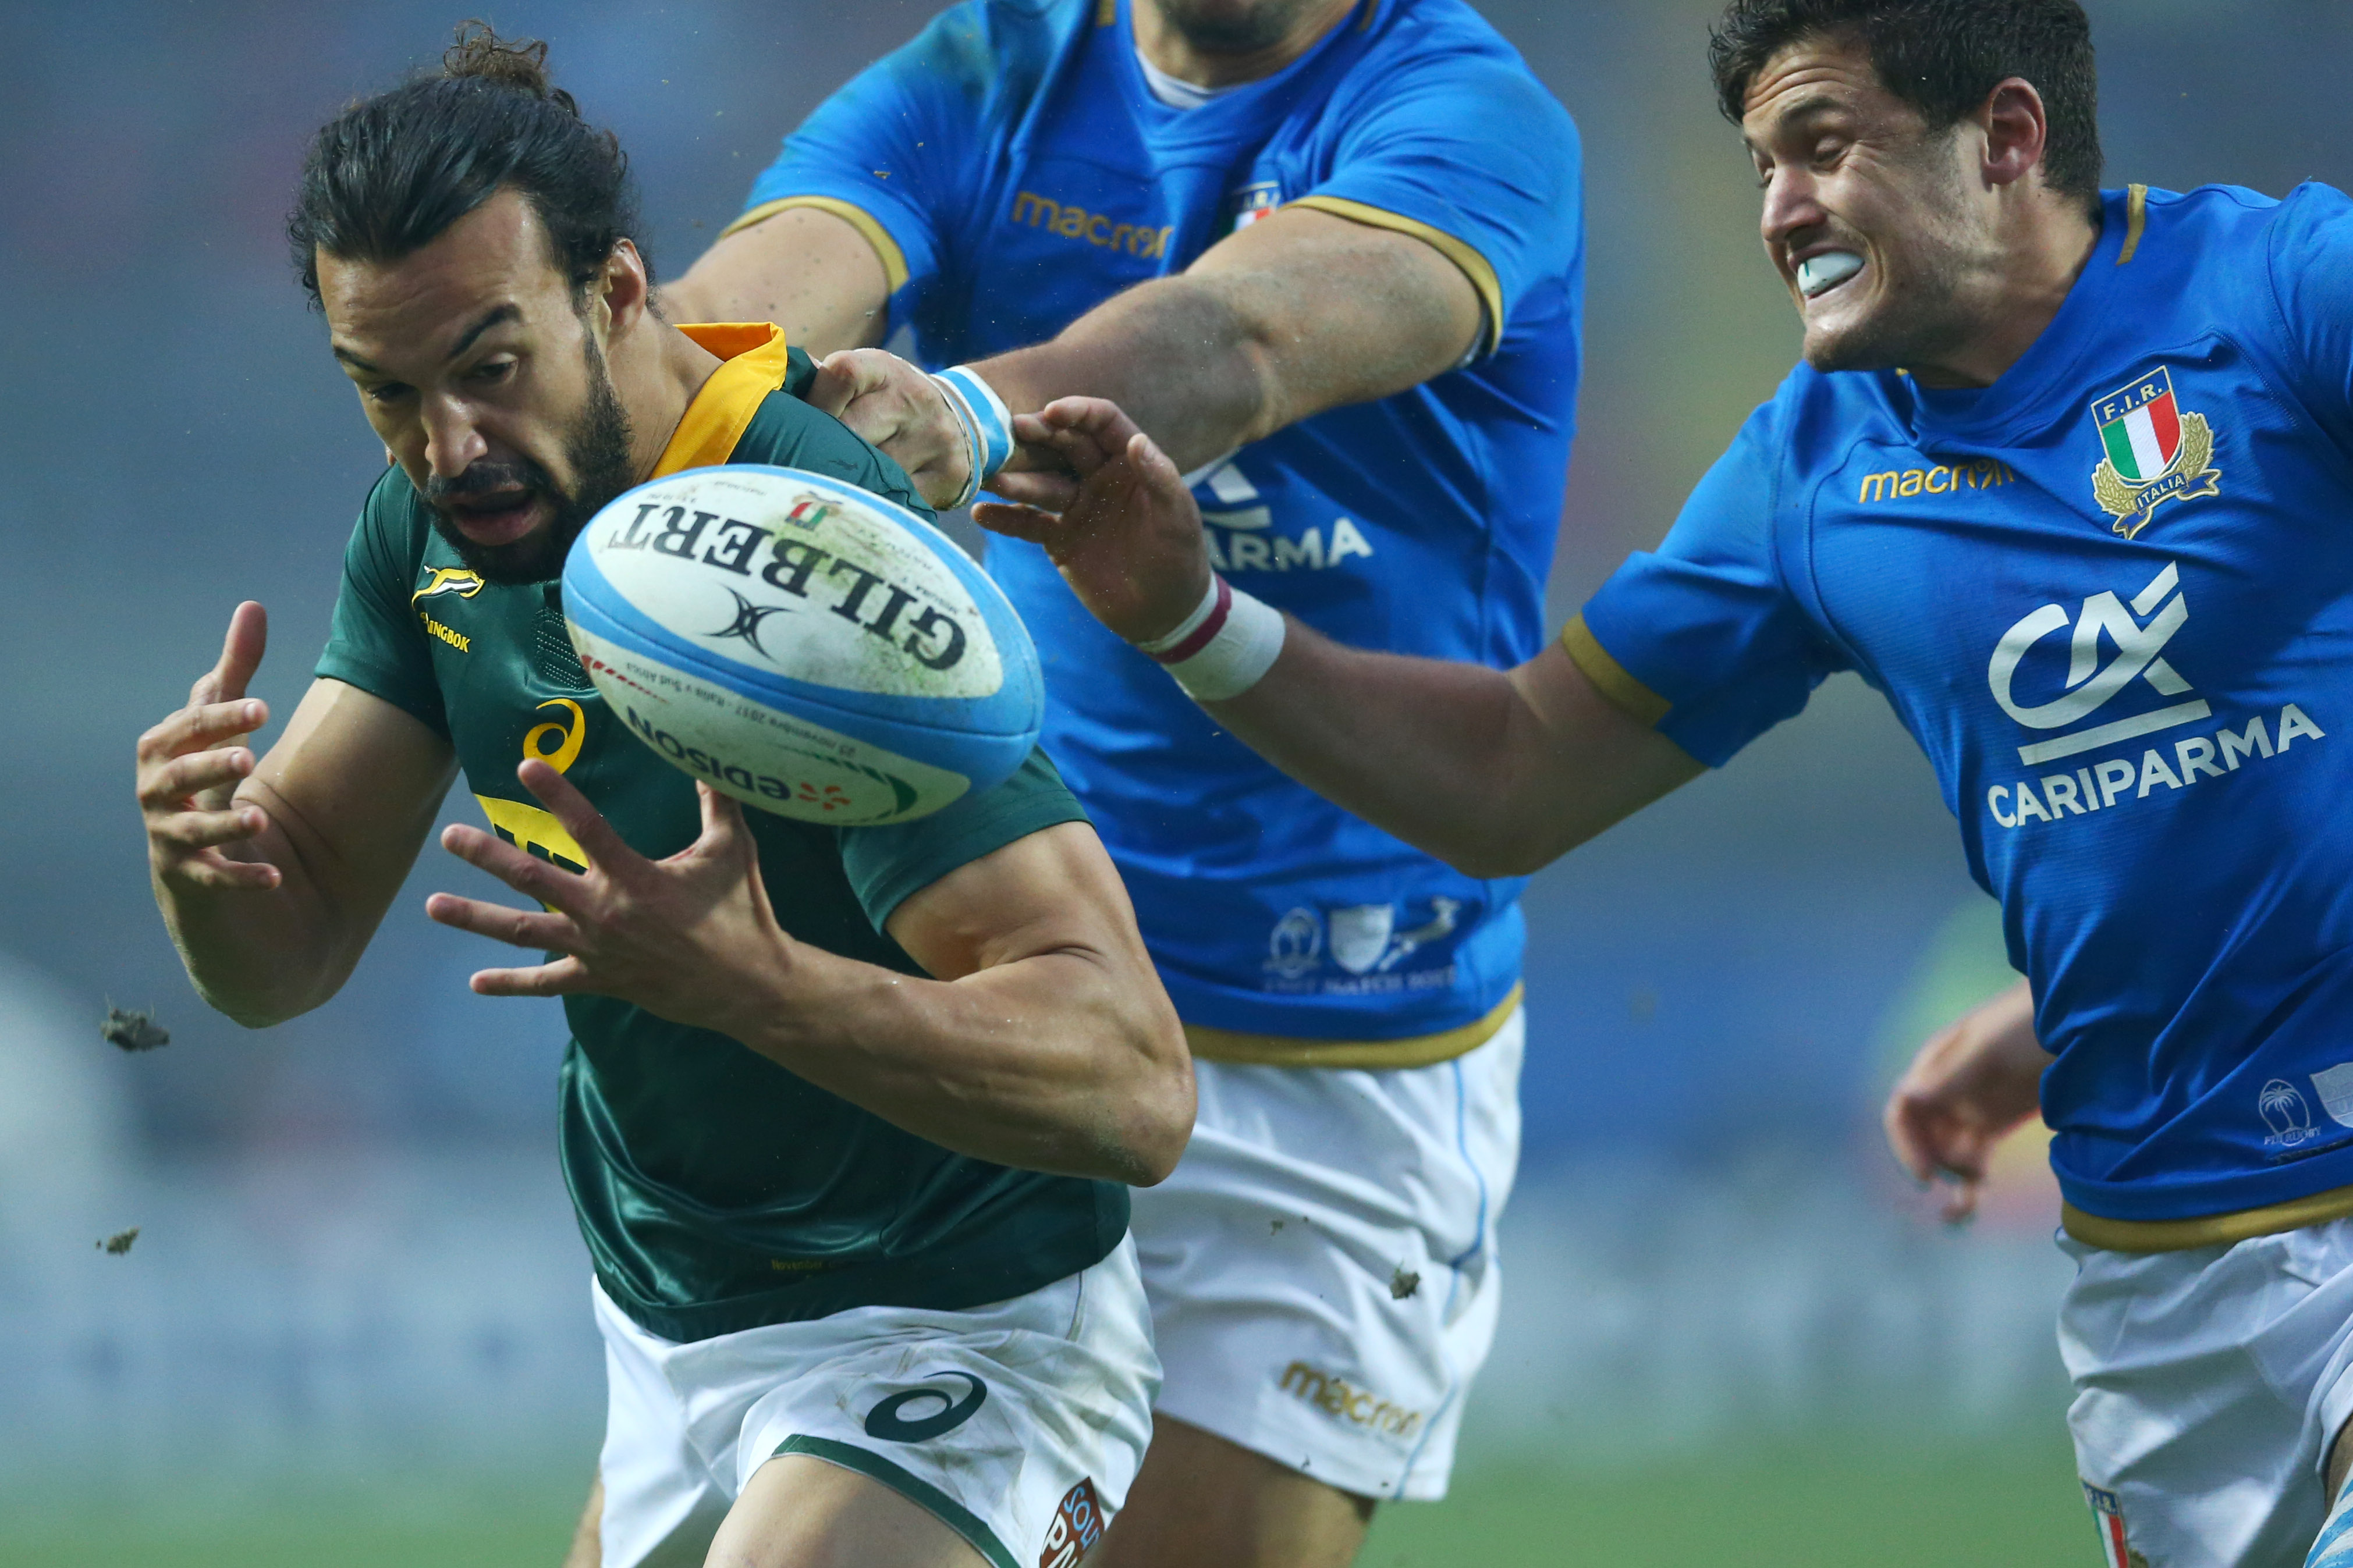 Springbok Dillyn Leyds tries to evade a tackle from Italy's Marcello Violi (right). Photo: Getty Images